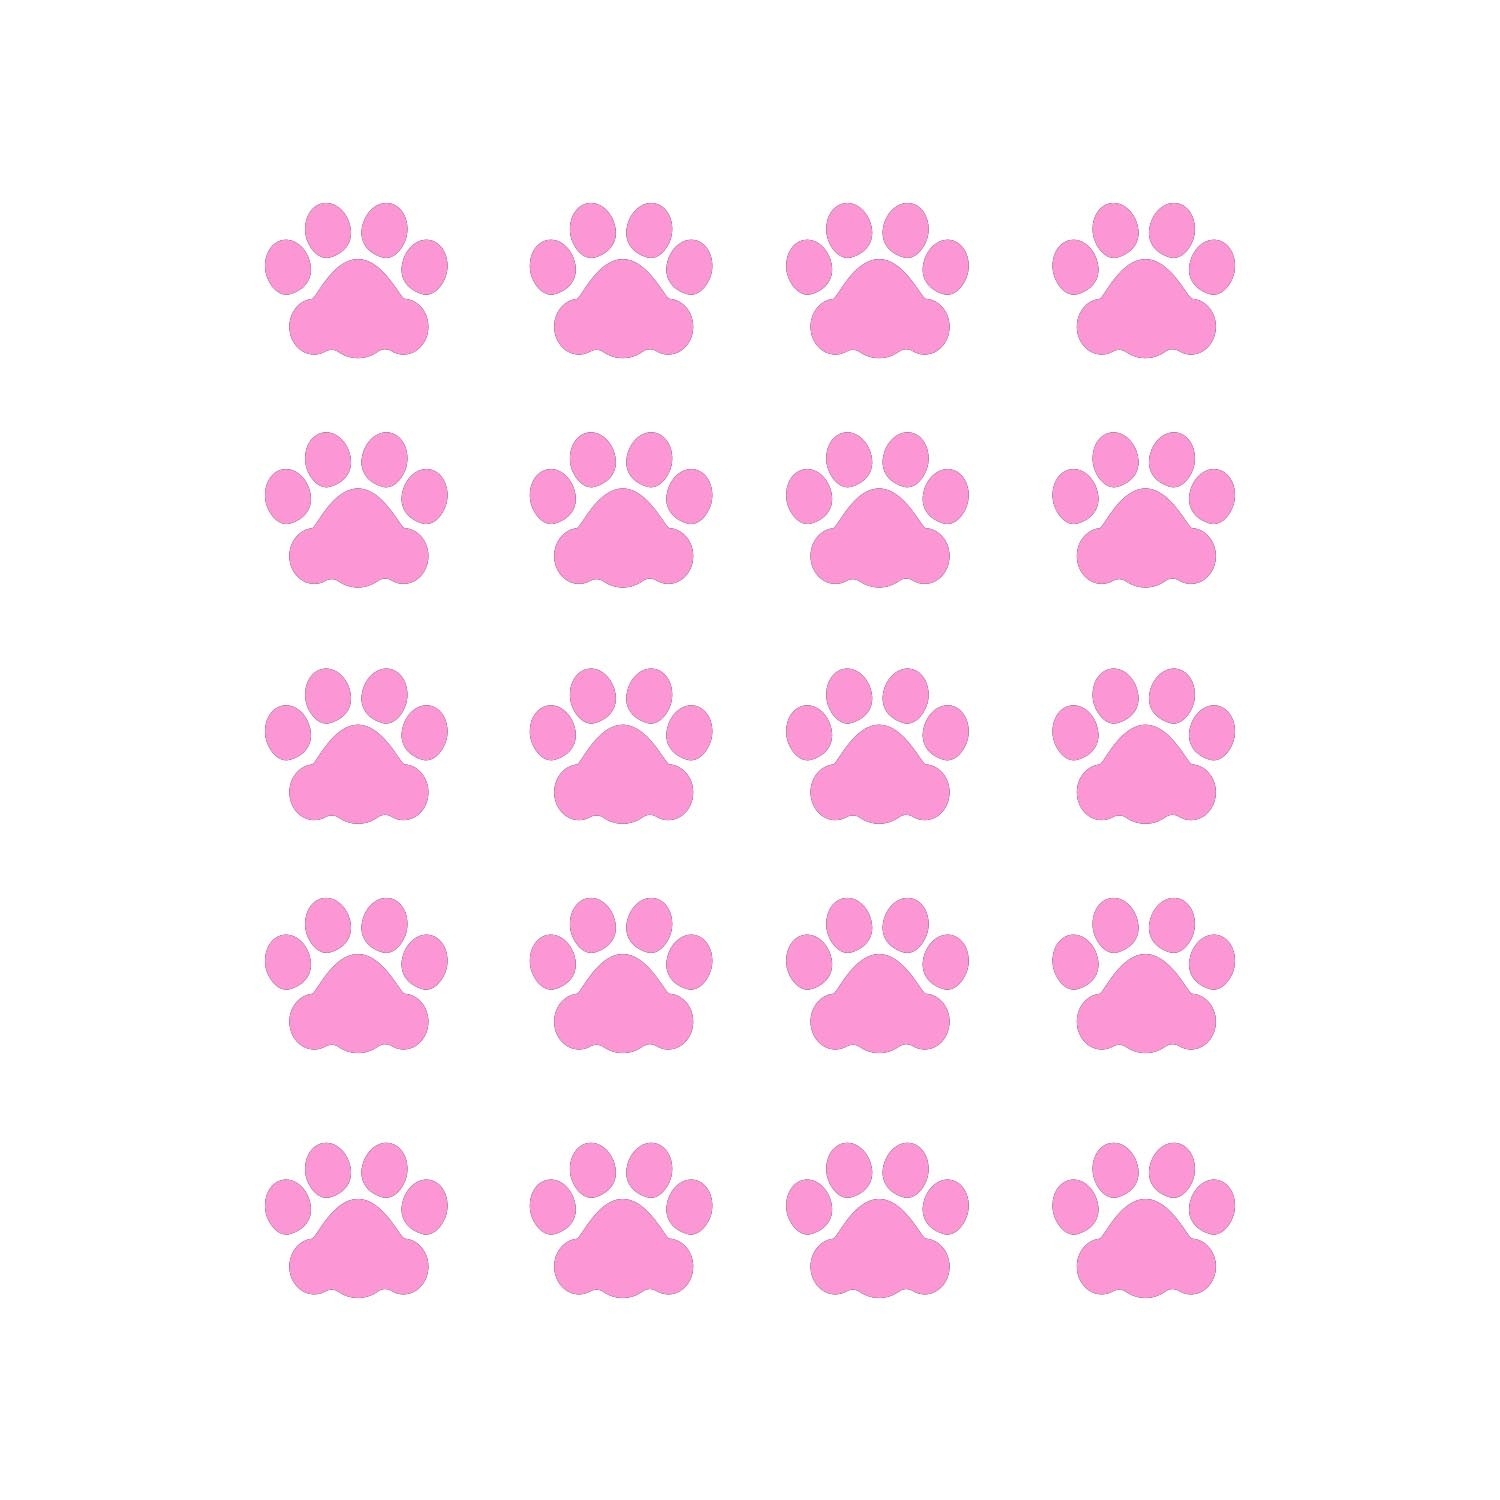 LiteMark 1 Inch Pink Cat Paw Prints - Pack of 60